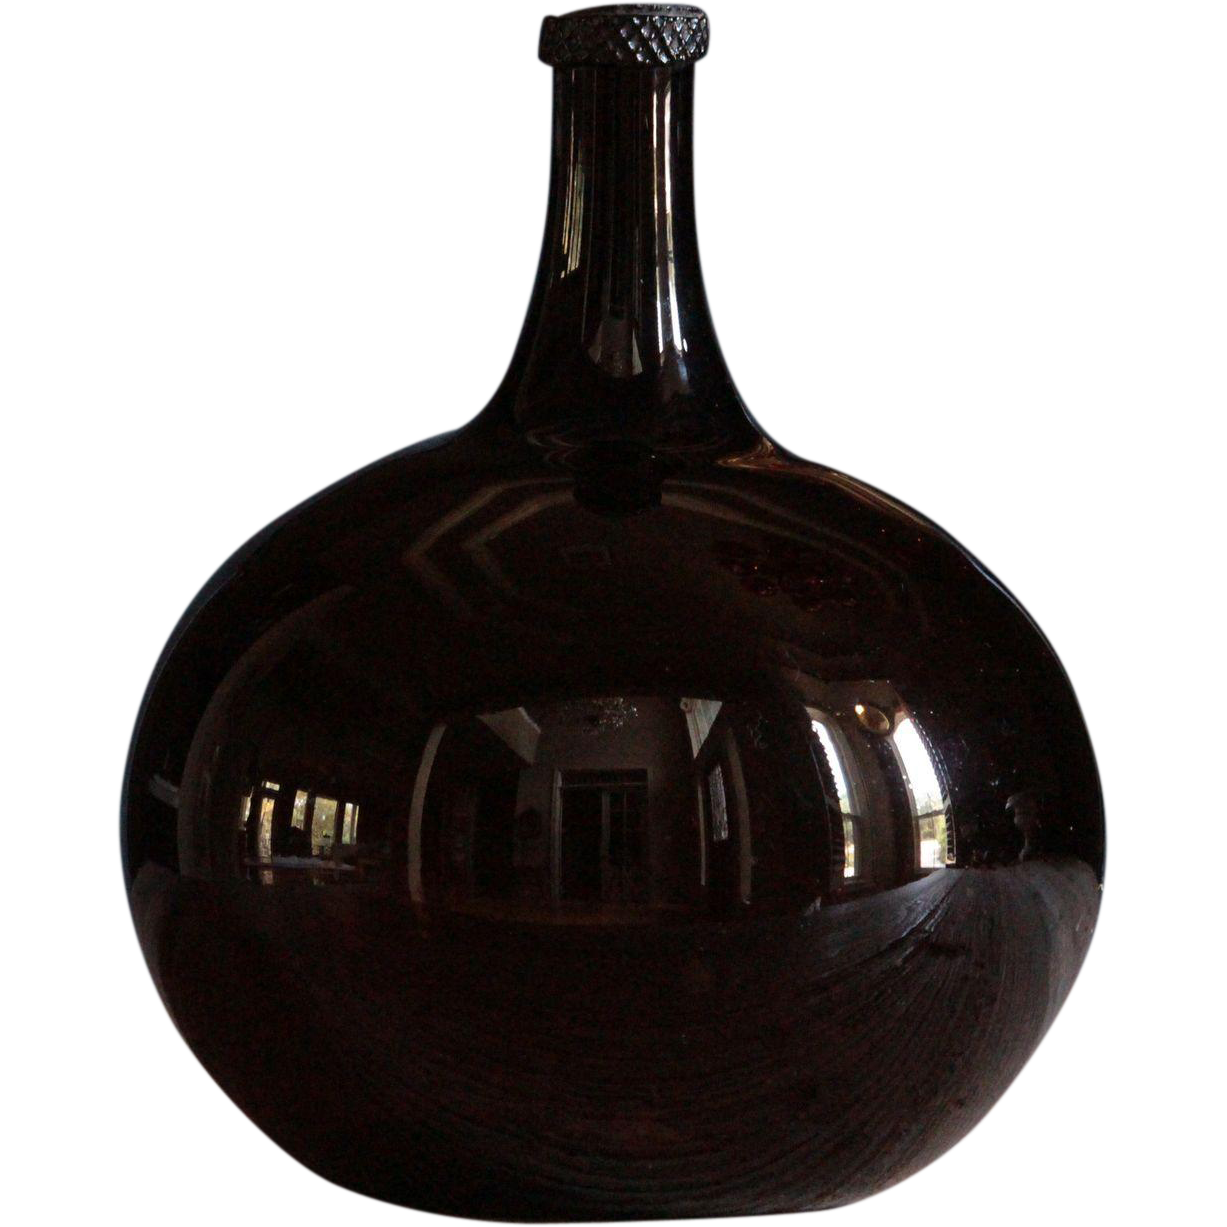 SMALL 19th Century French Amber Glass Wine Demijohn - Antique Cognac Bottle / Flask